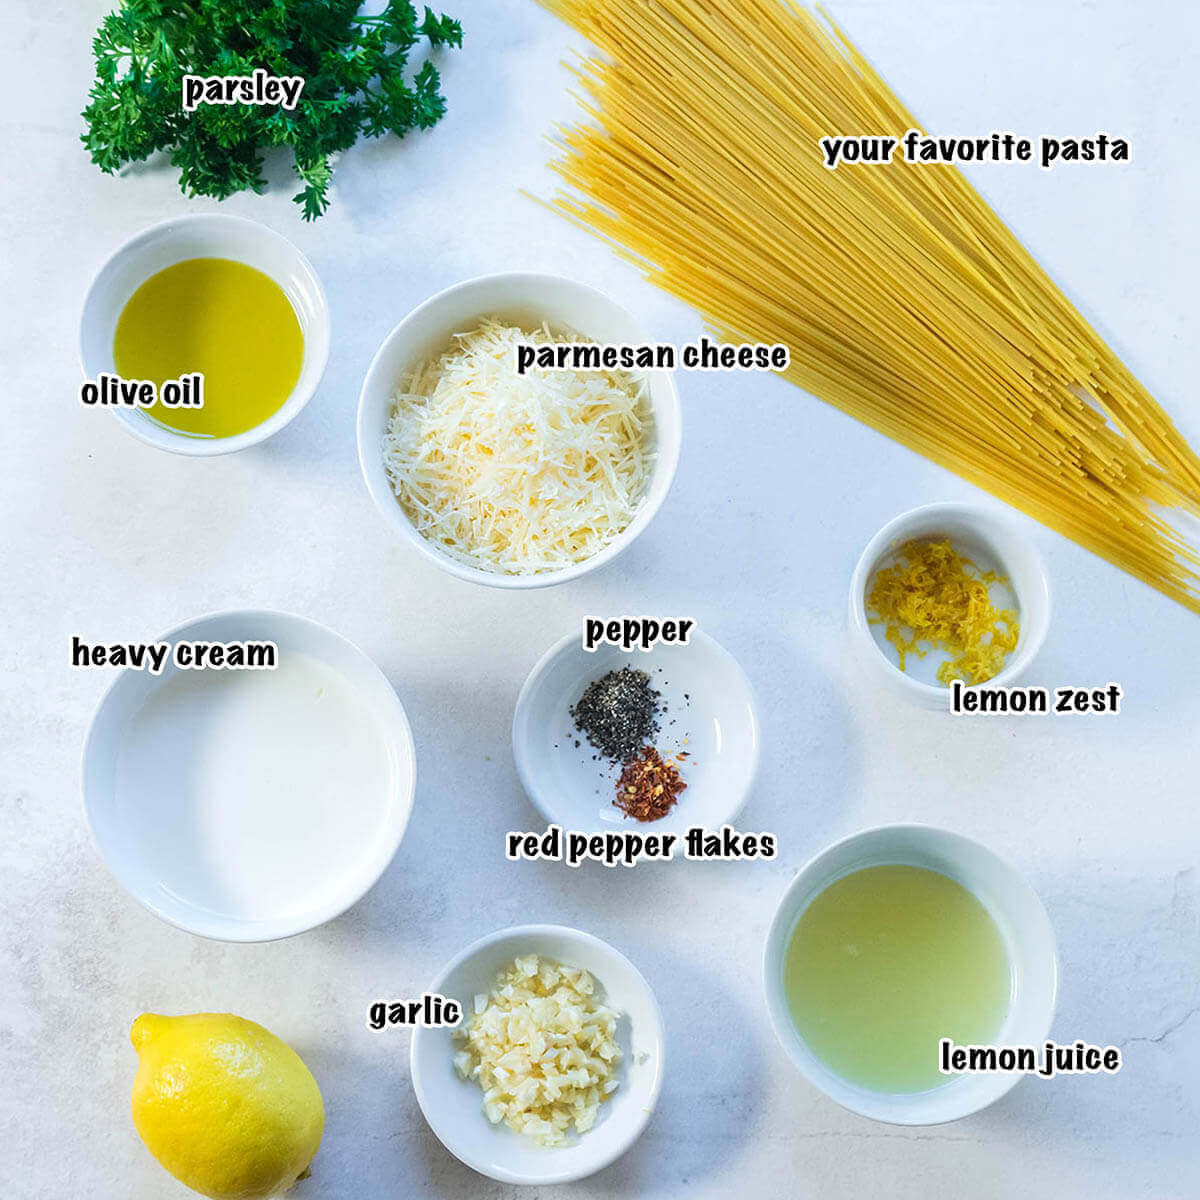 All of the ingredients needed for lemon garlic pasta